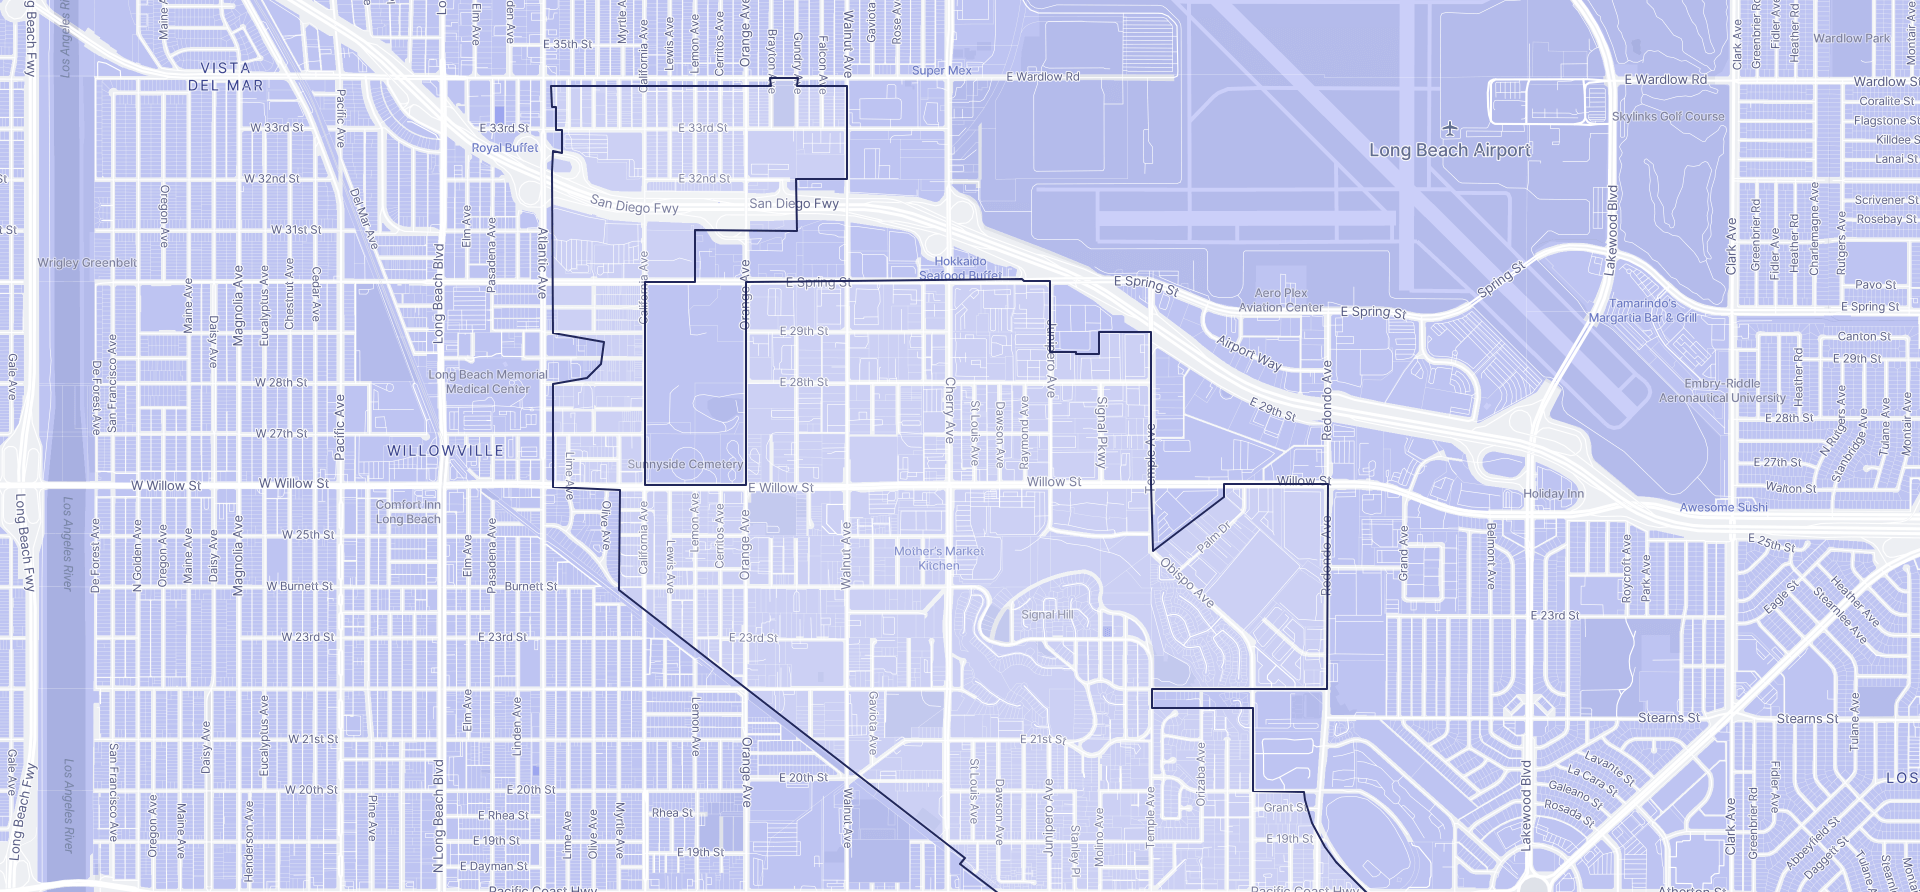 Image of Signal Hill boundaries on a map.